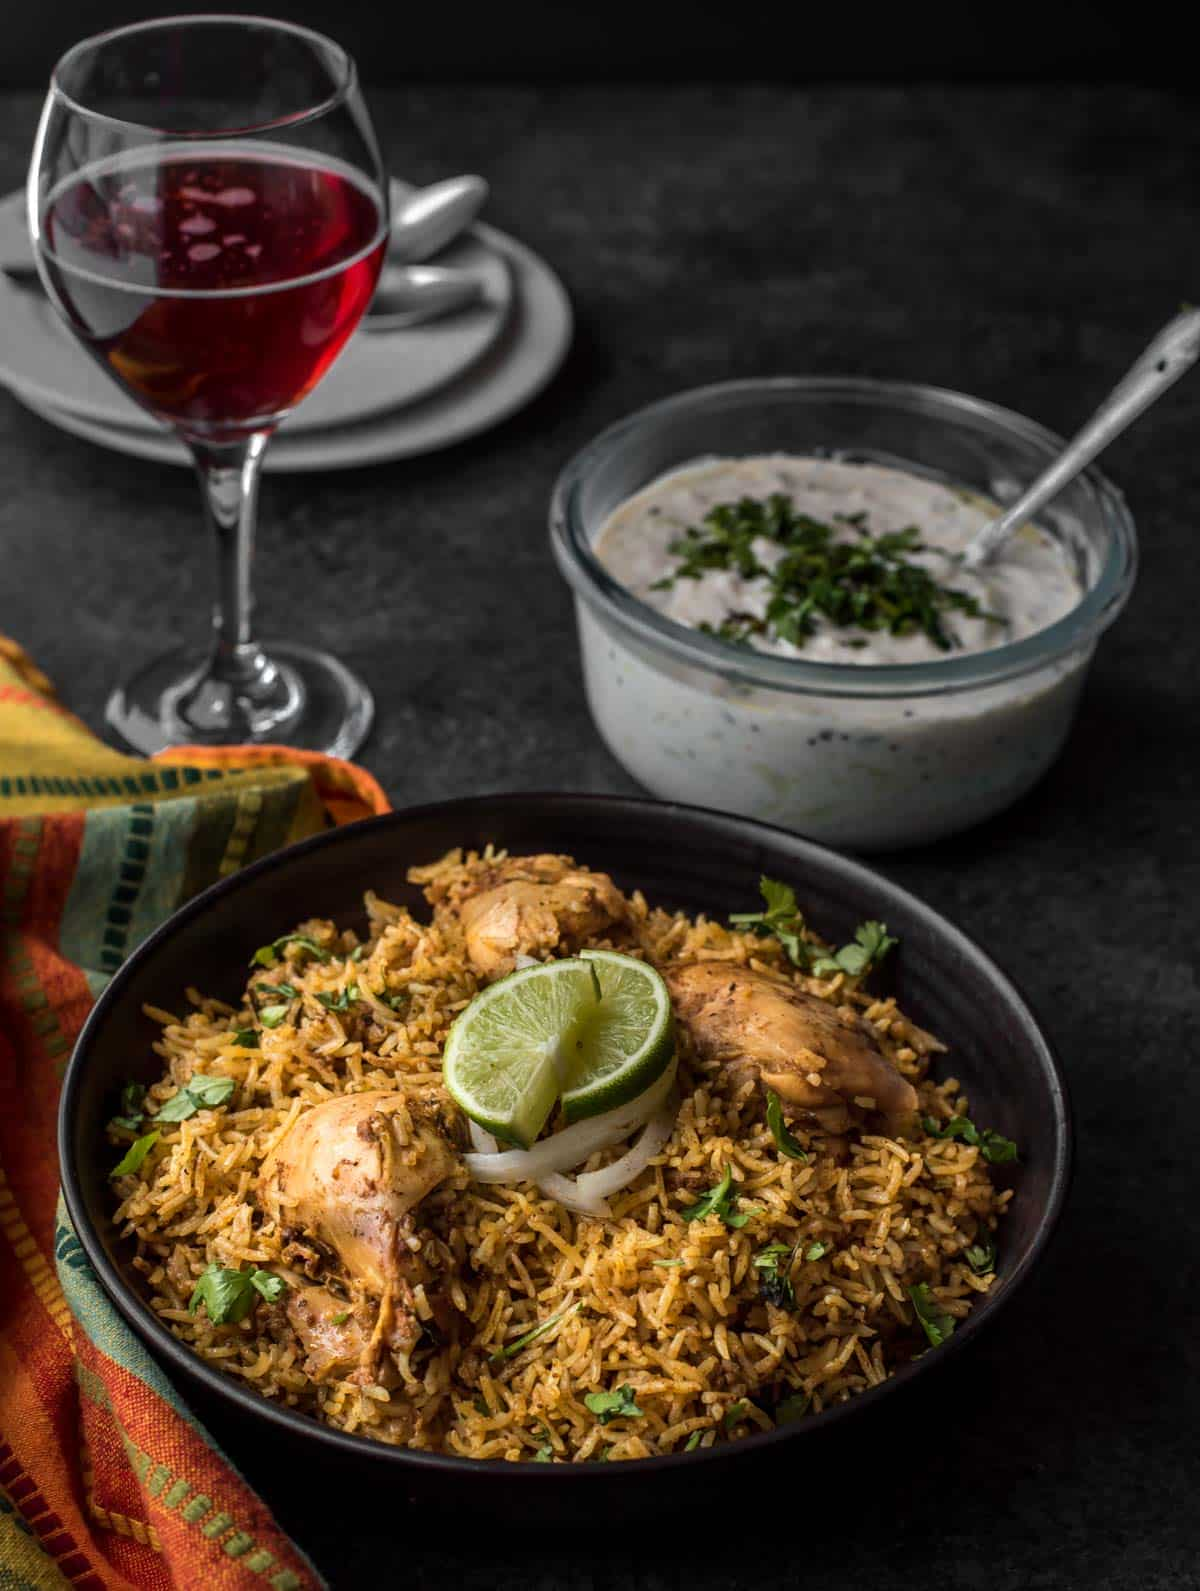 Chettinad Chicken biryani served in a black bowl with a side of raita and red sparkling wine